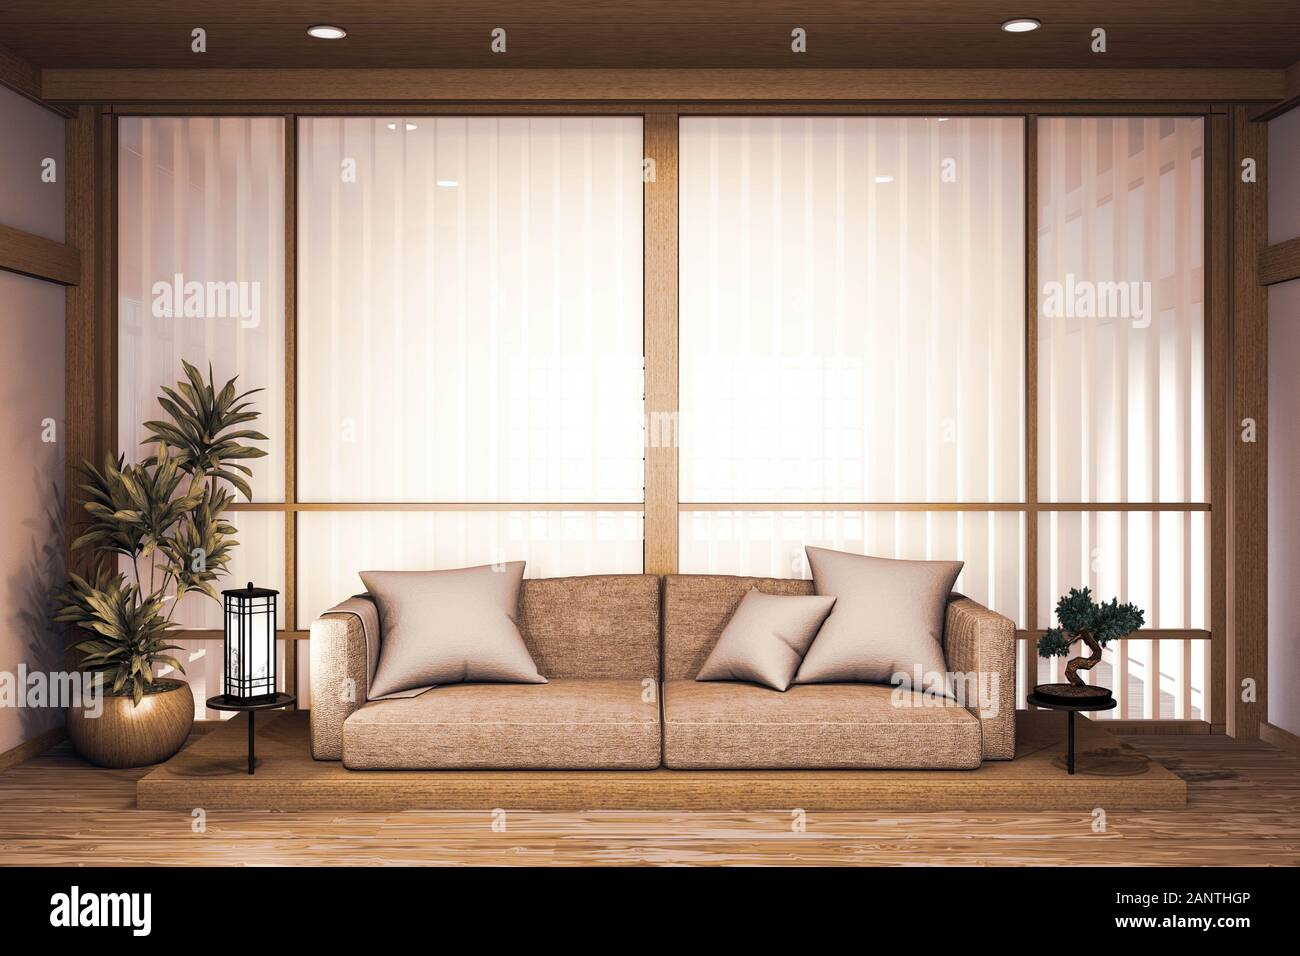 Sofa Wooden Japanese Design On Room Japanese Wooden Floor And